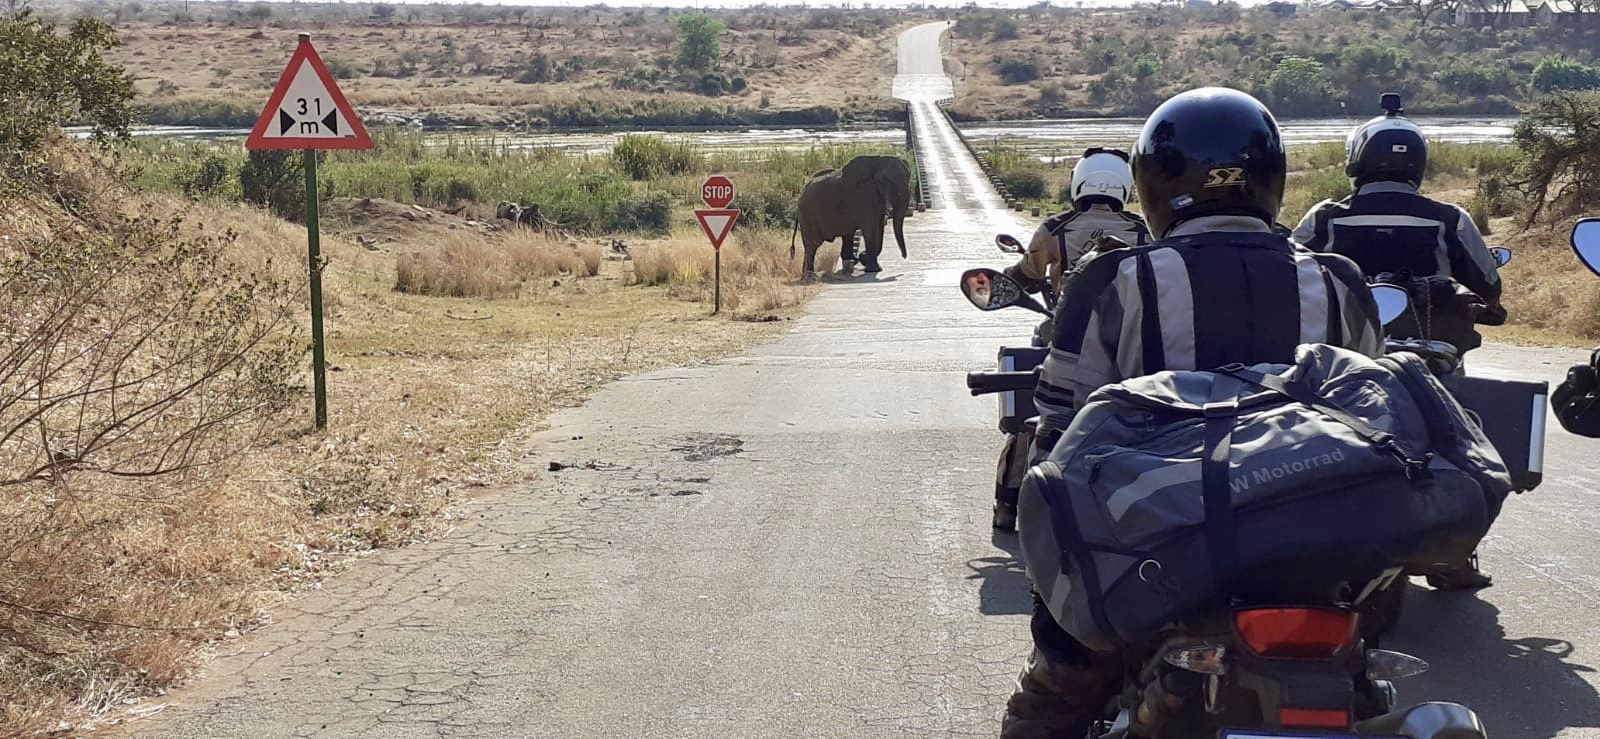 Riding into Kruger